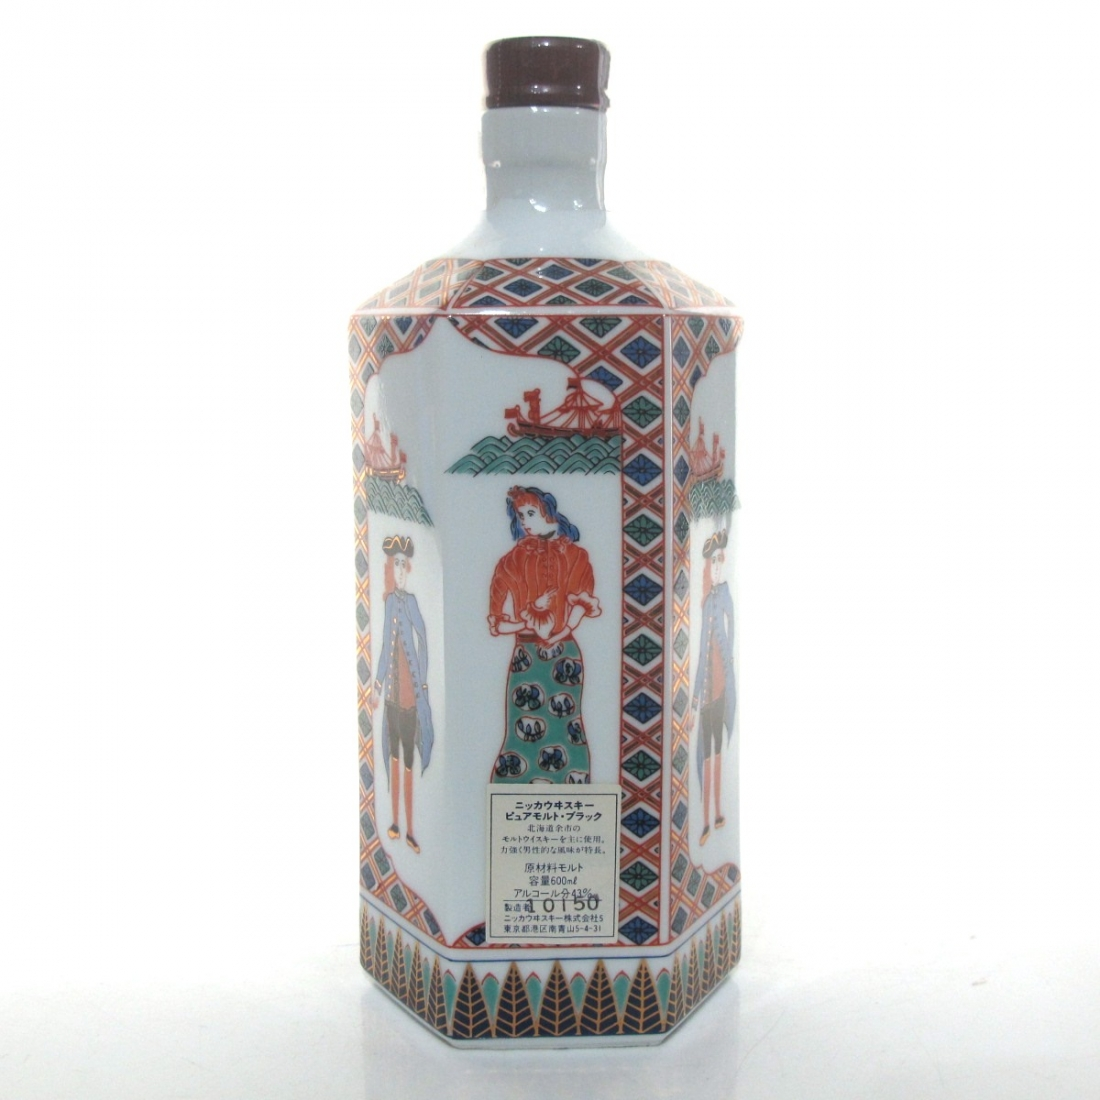 Nikka Pure Malt / Arita Ceramic Decanter 60cl